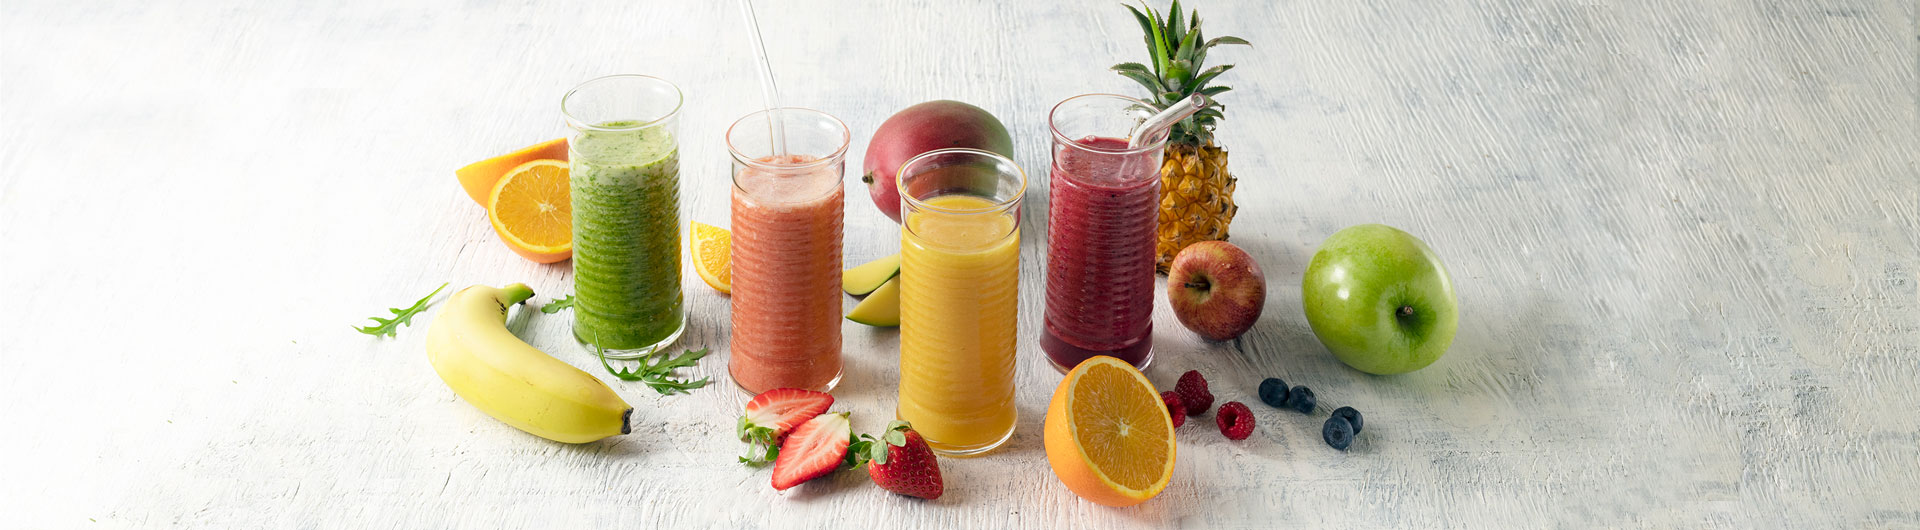 smoothies bei Haubis